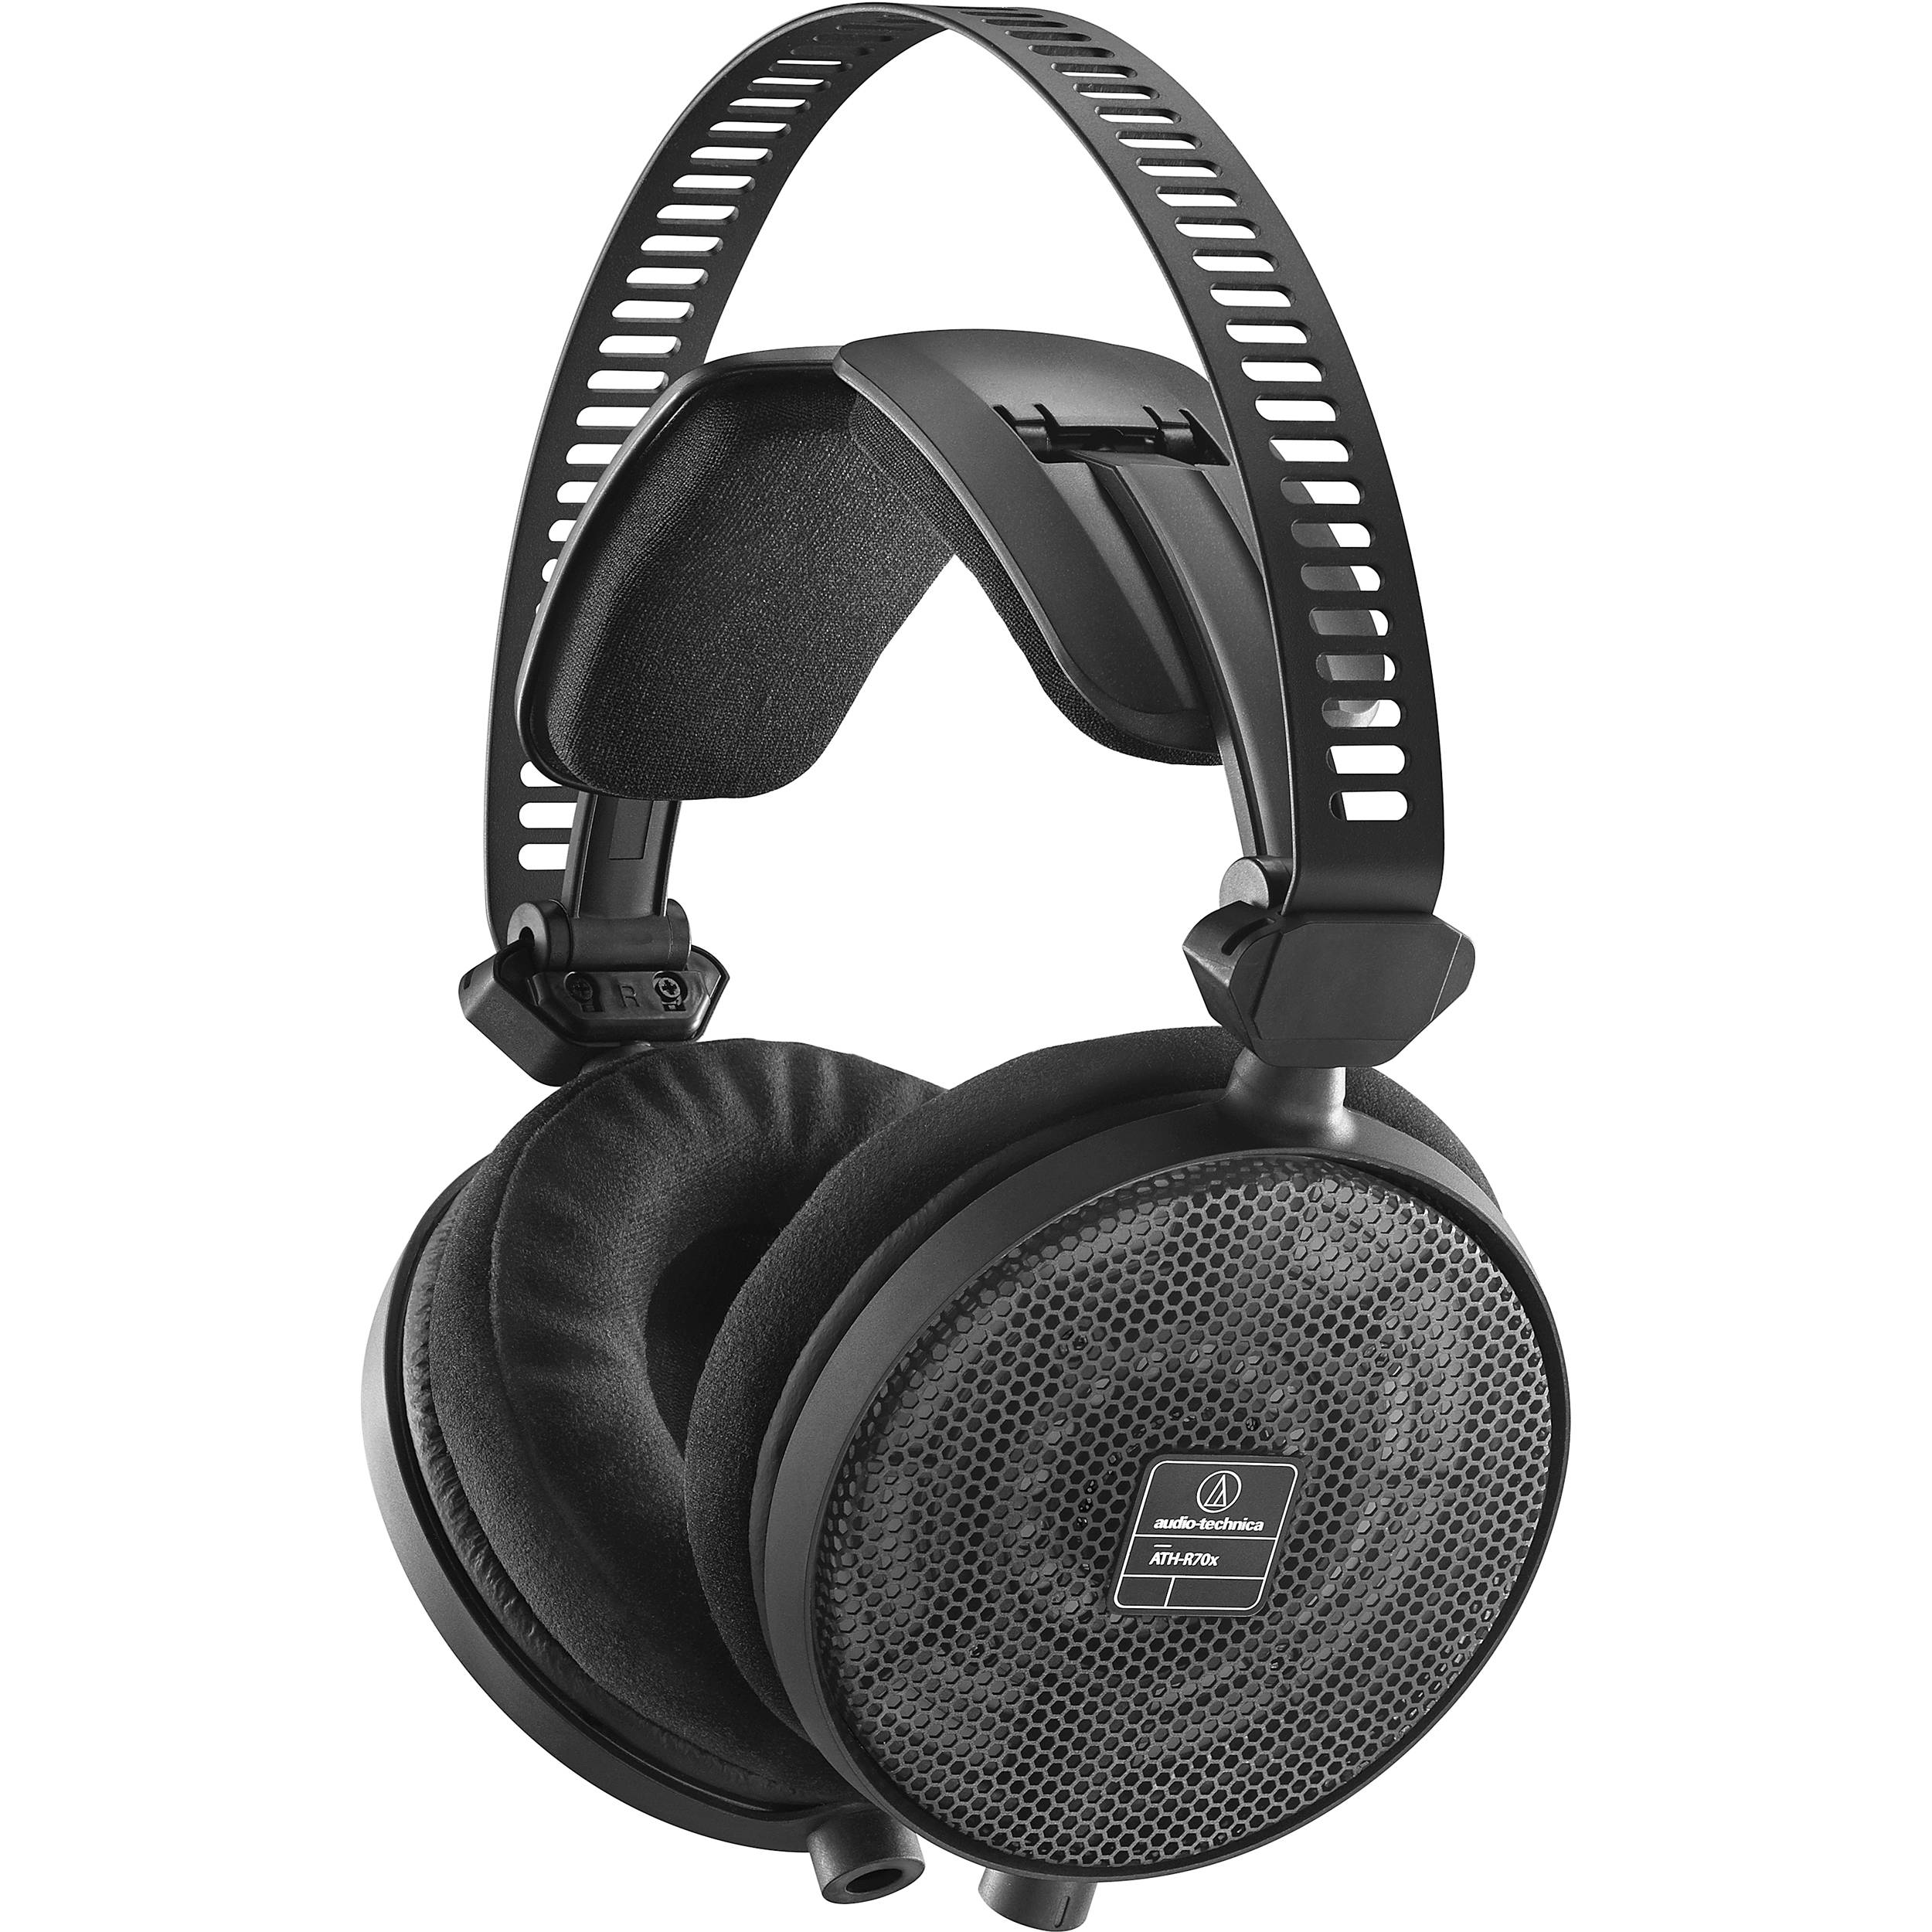 Audio technica ath r70x pro reference headphones also Zotac Zbox Ci523 Nano Fanless Skylakeu Minipc Review further Adding Bluetooth And A Lightning Connector To Beats Pro Headphones furthermore Usb Wireless Pen Mouse p02867c0037d015 likewise 2696. on headphone adapter